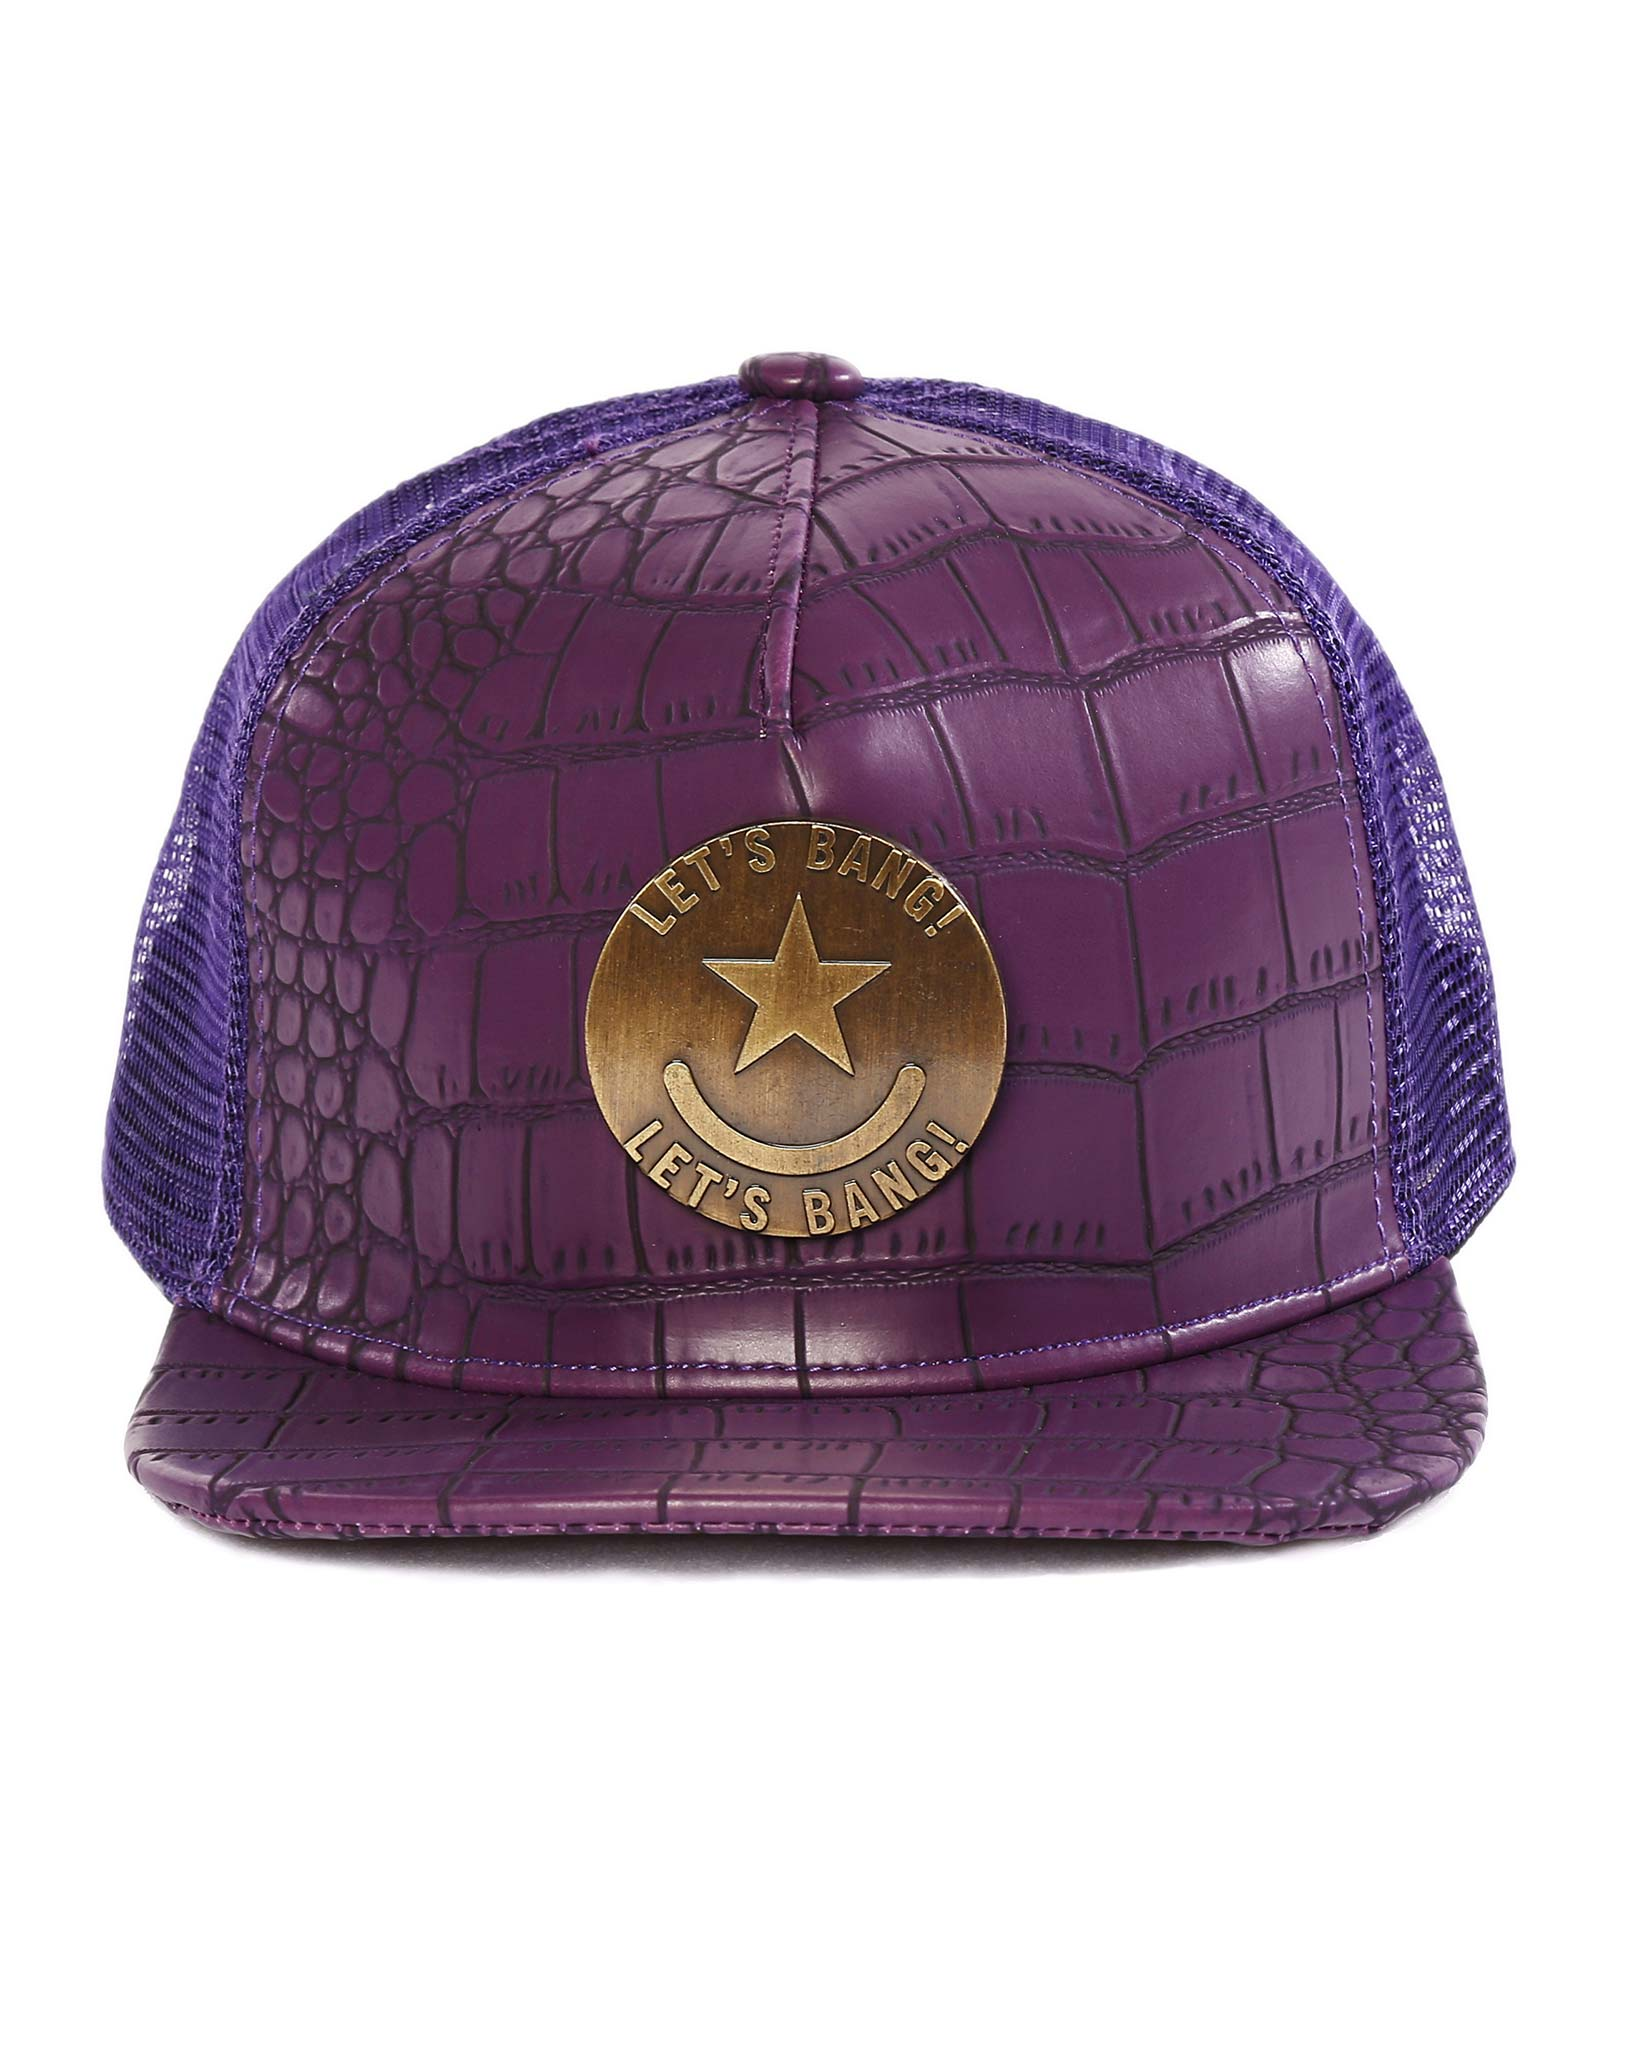 LET'S BANG Hat (Purple) Bang Clothes Beach Nightlife Gym Gear For Men Accessories